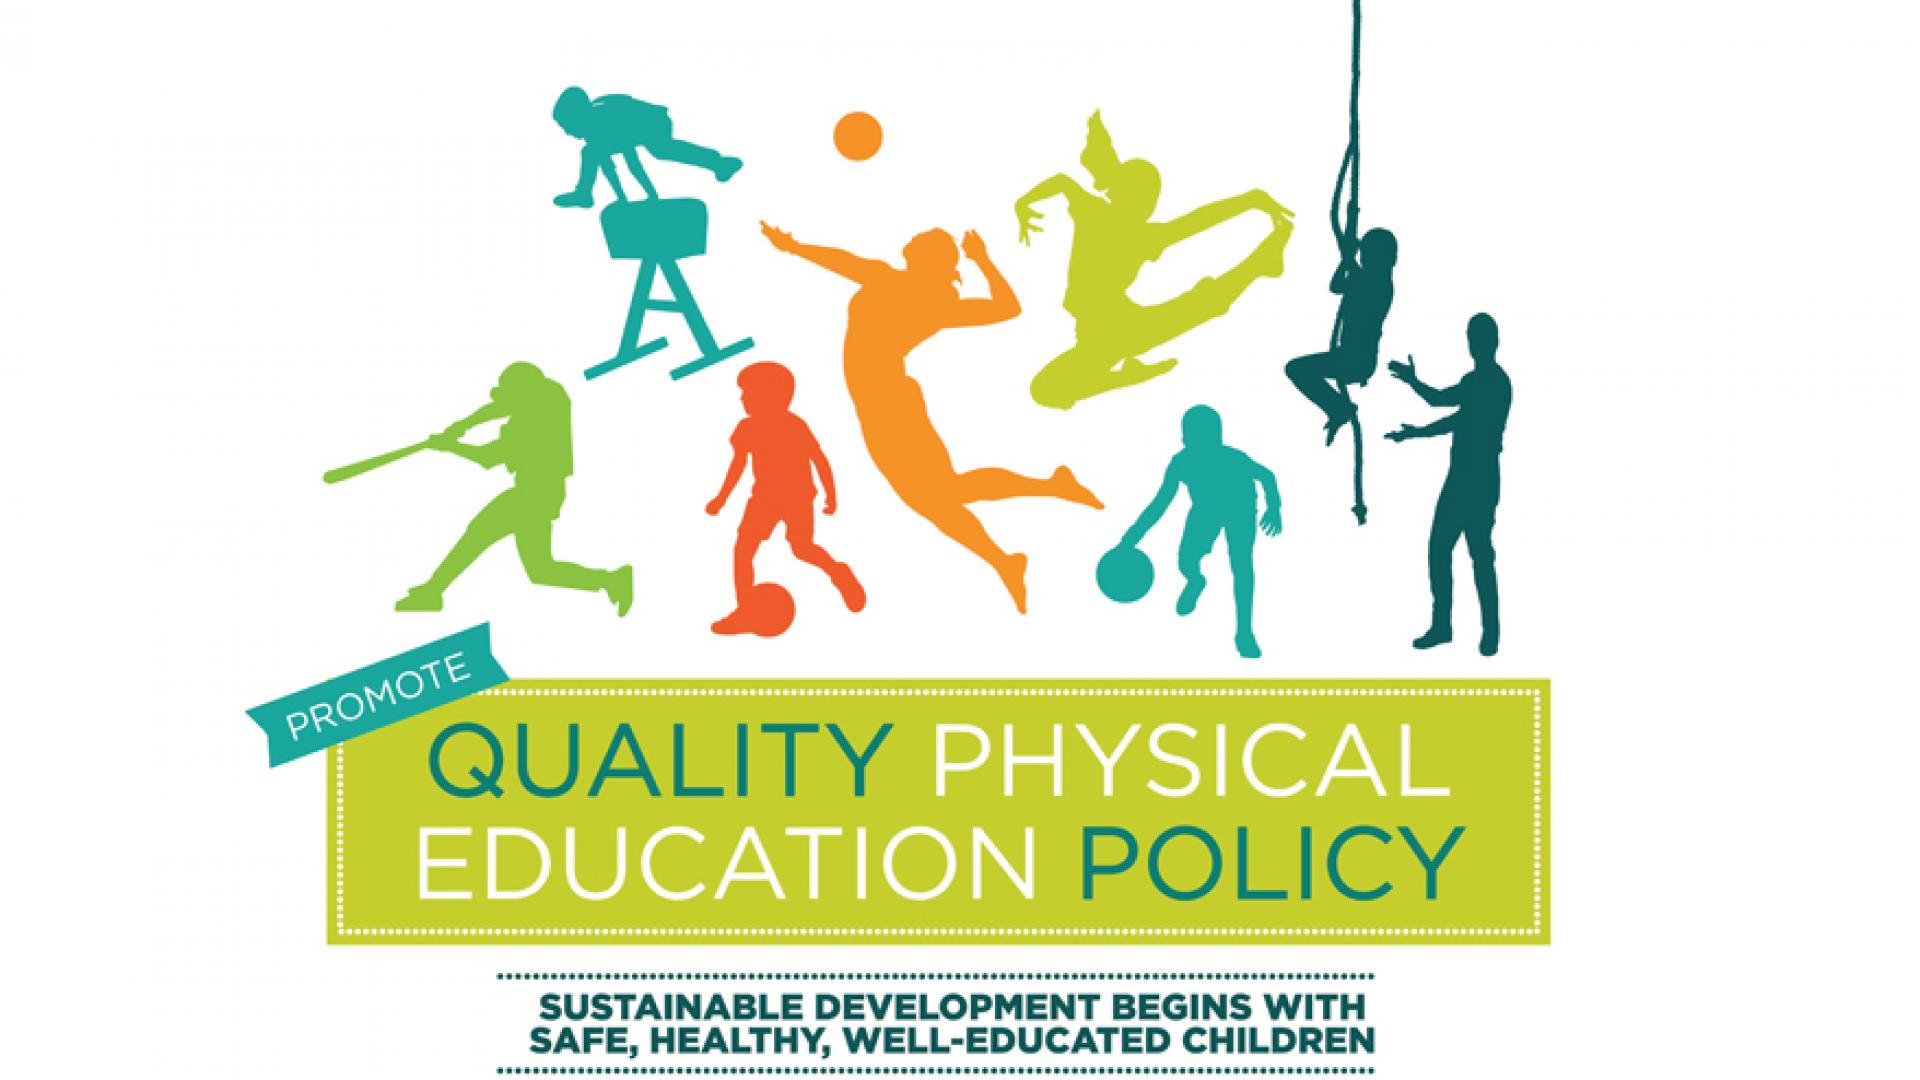 quality physical education policy infographic unesco inclusive